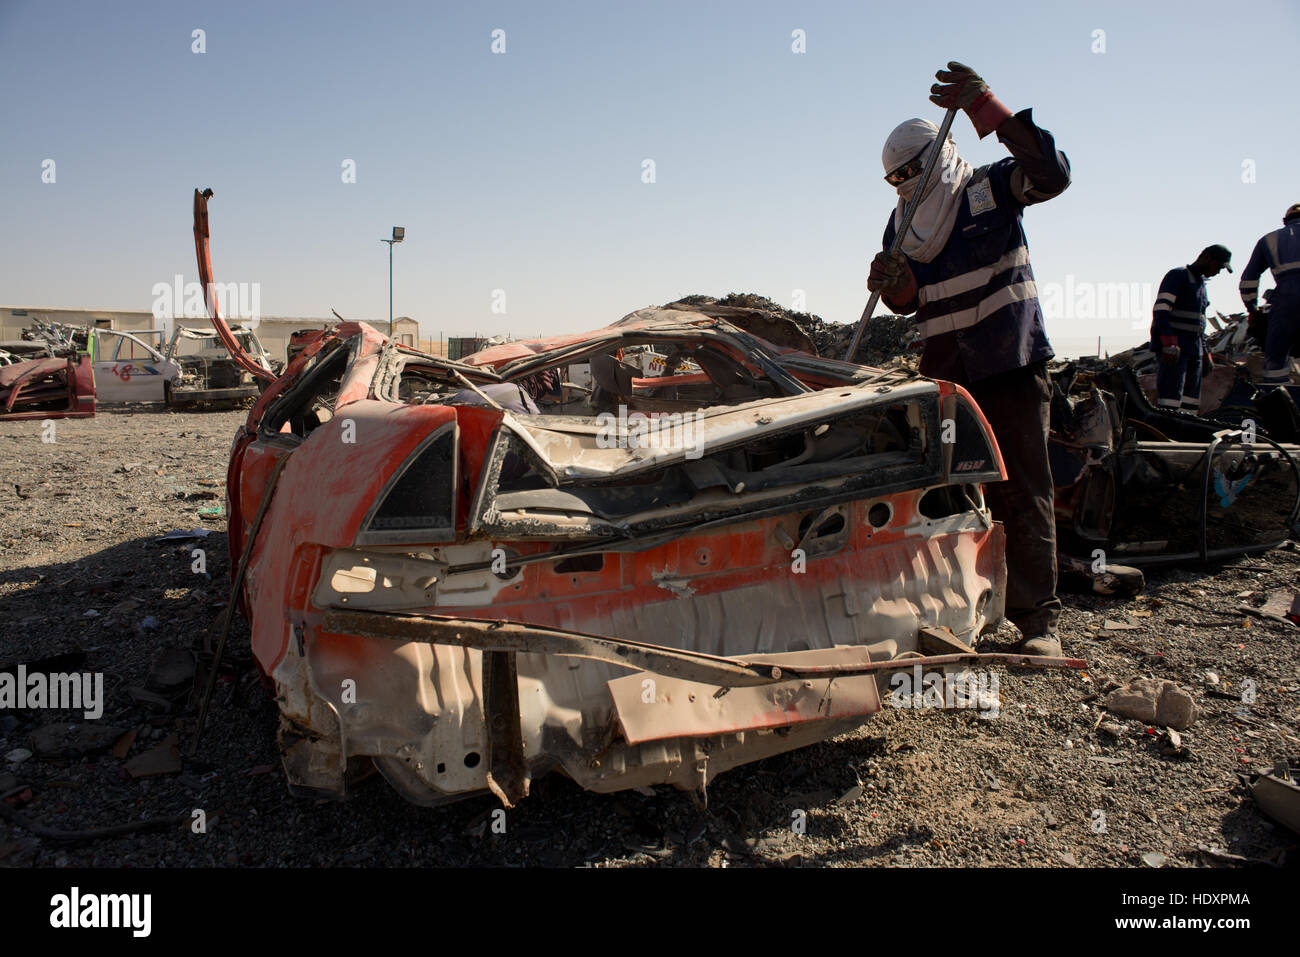 Migrant worker breaking up cars for recycling - Stock Image